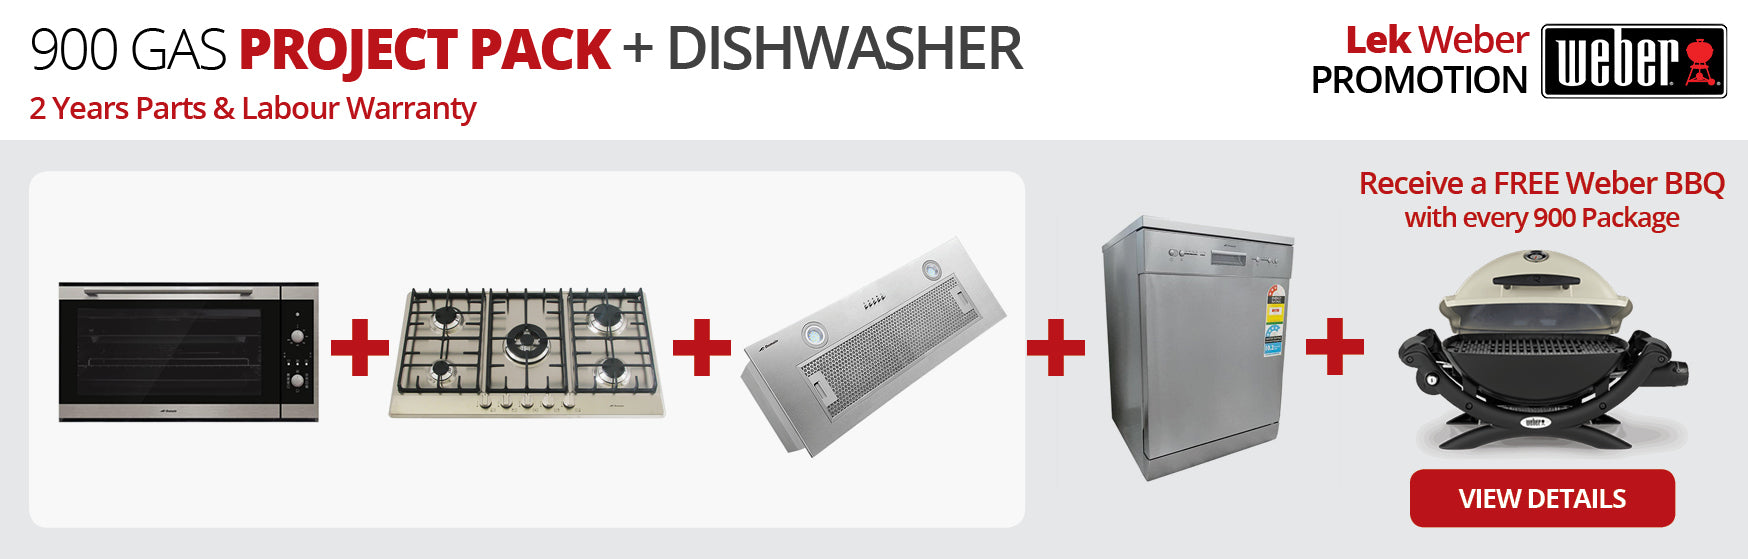 900 GAS Project Pack + Dishwasher